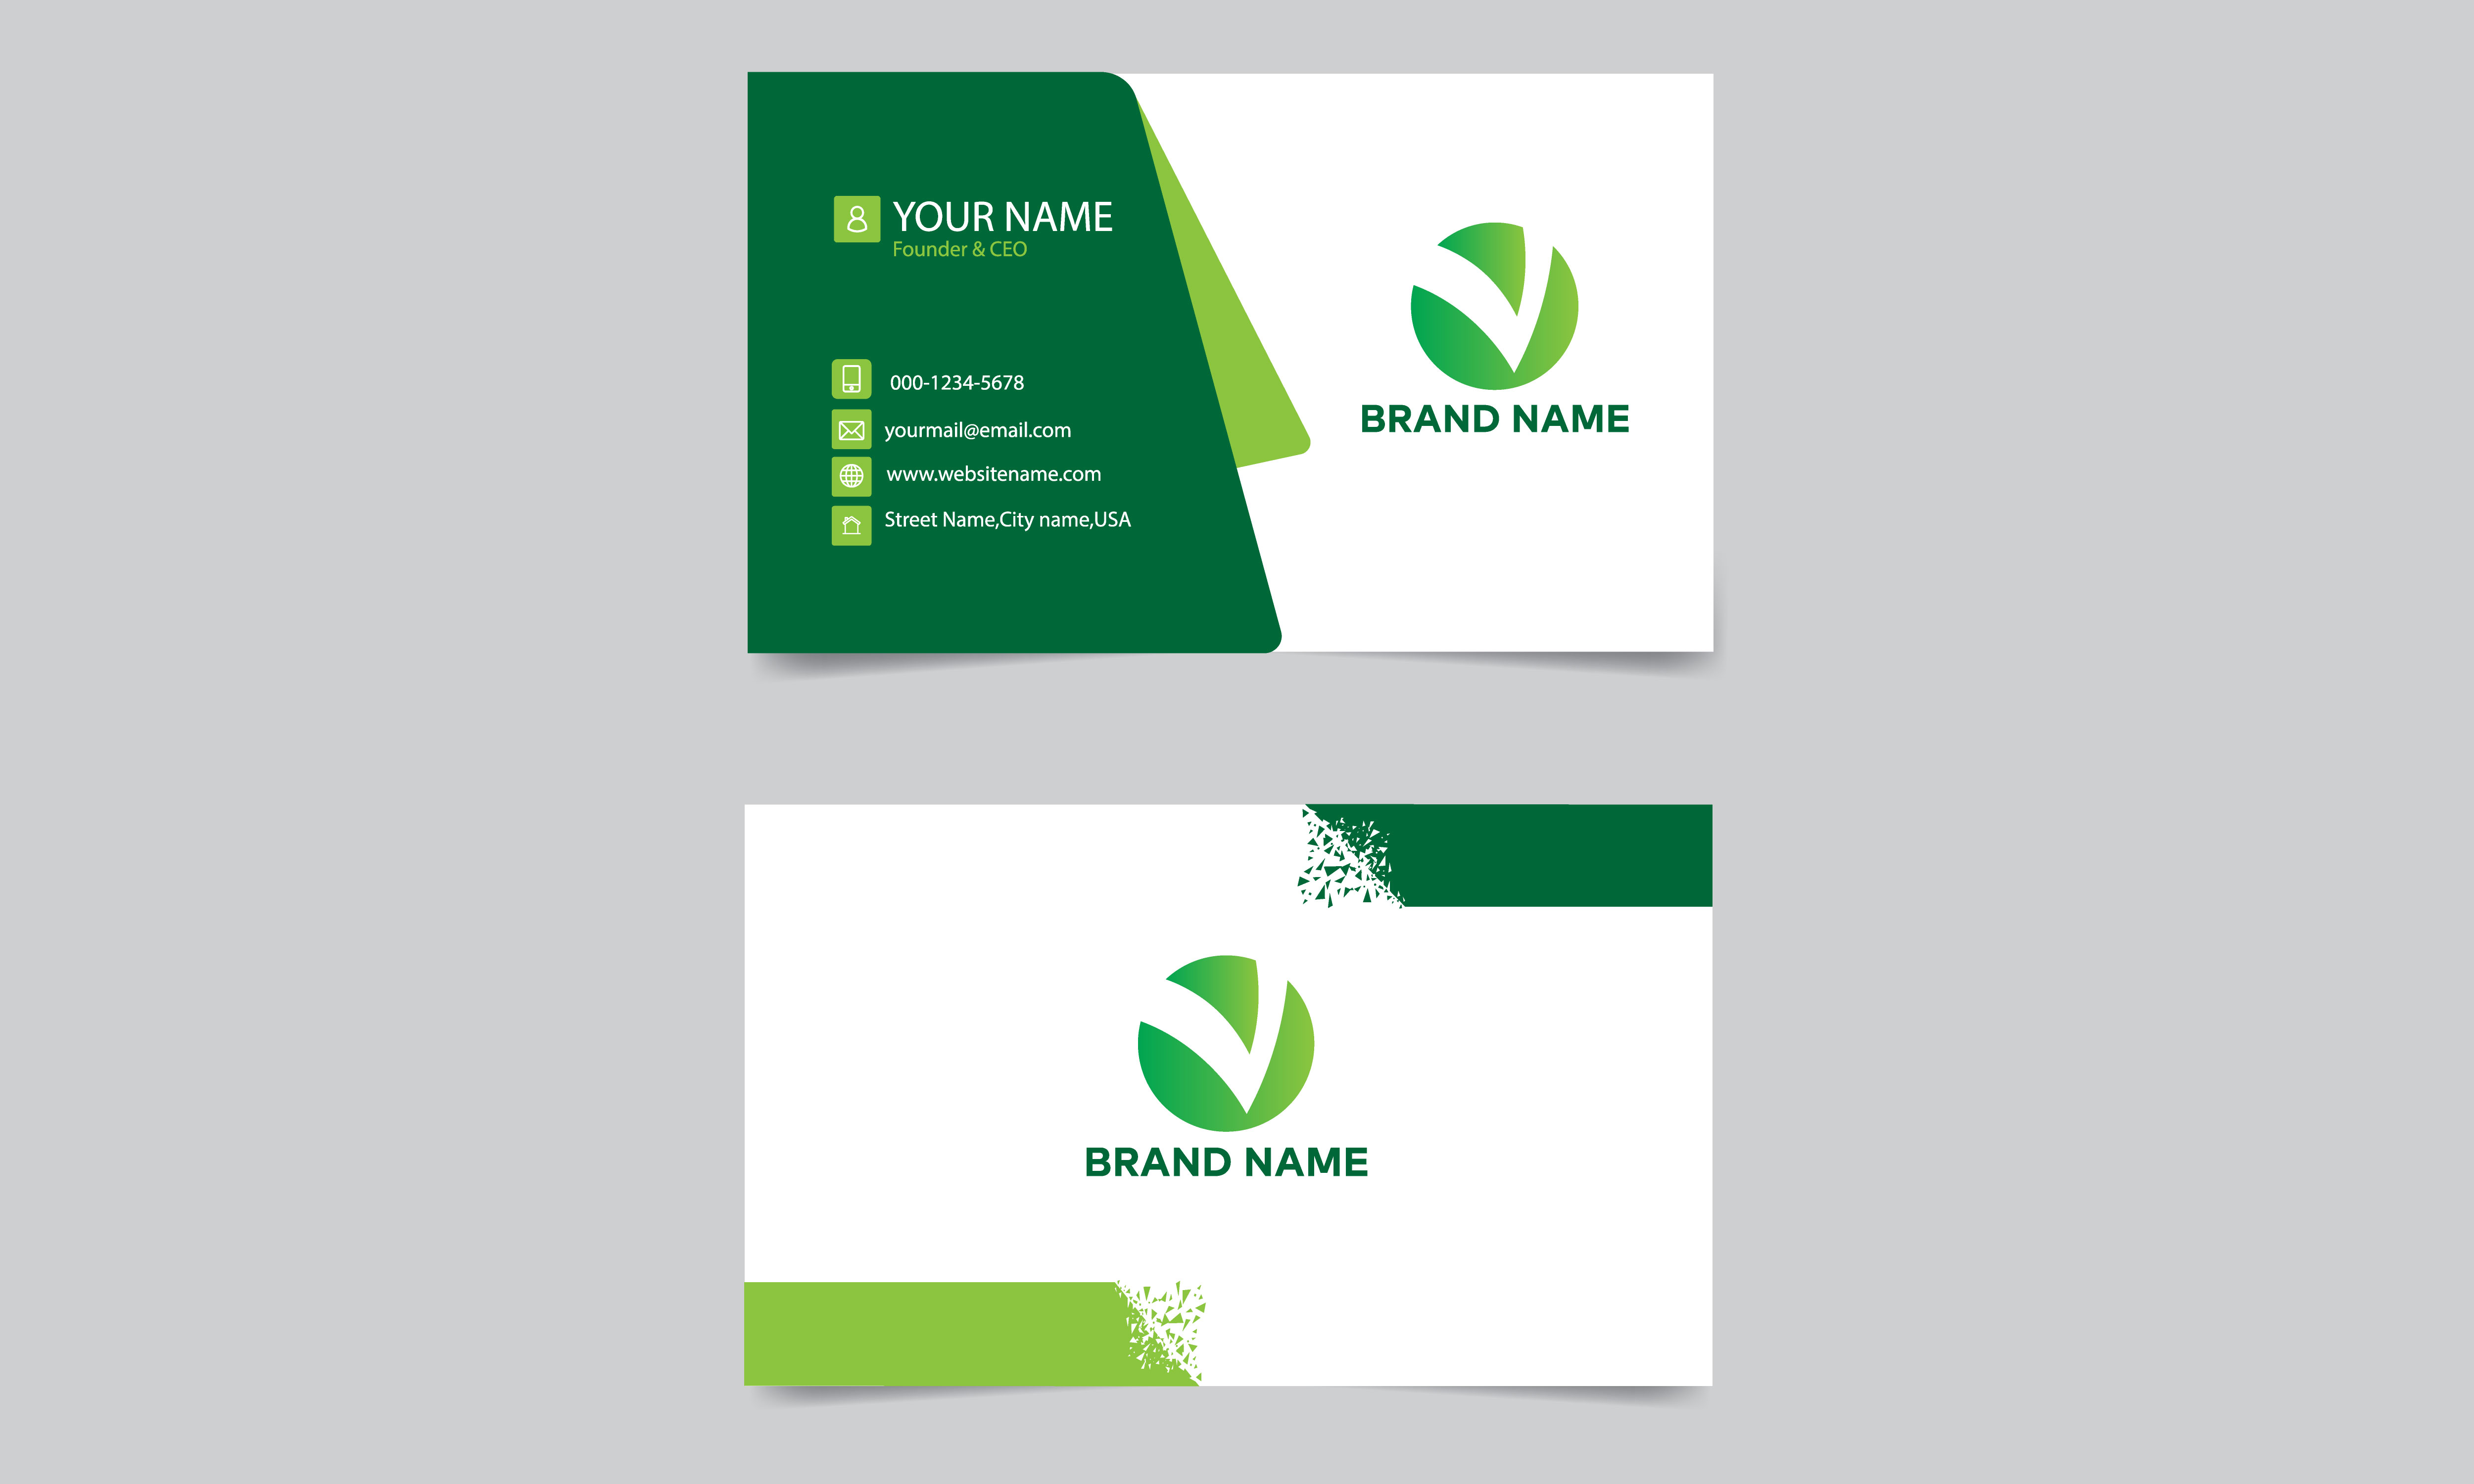 Double-sided modern simple green and white business card